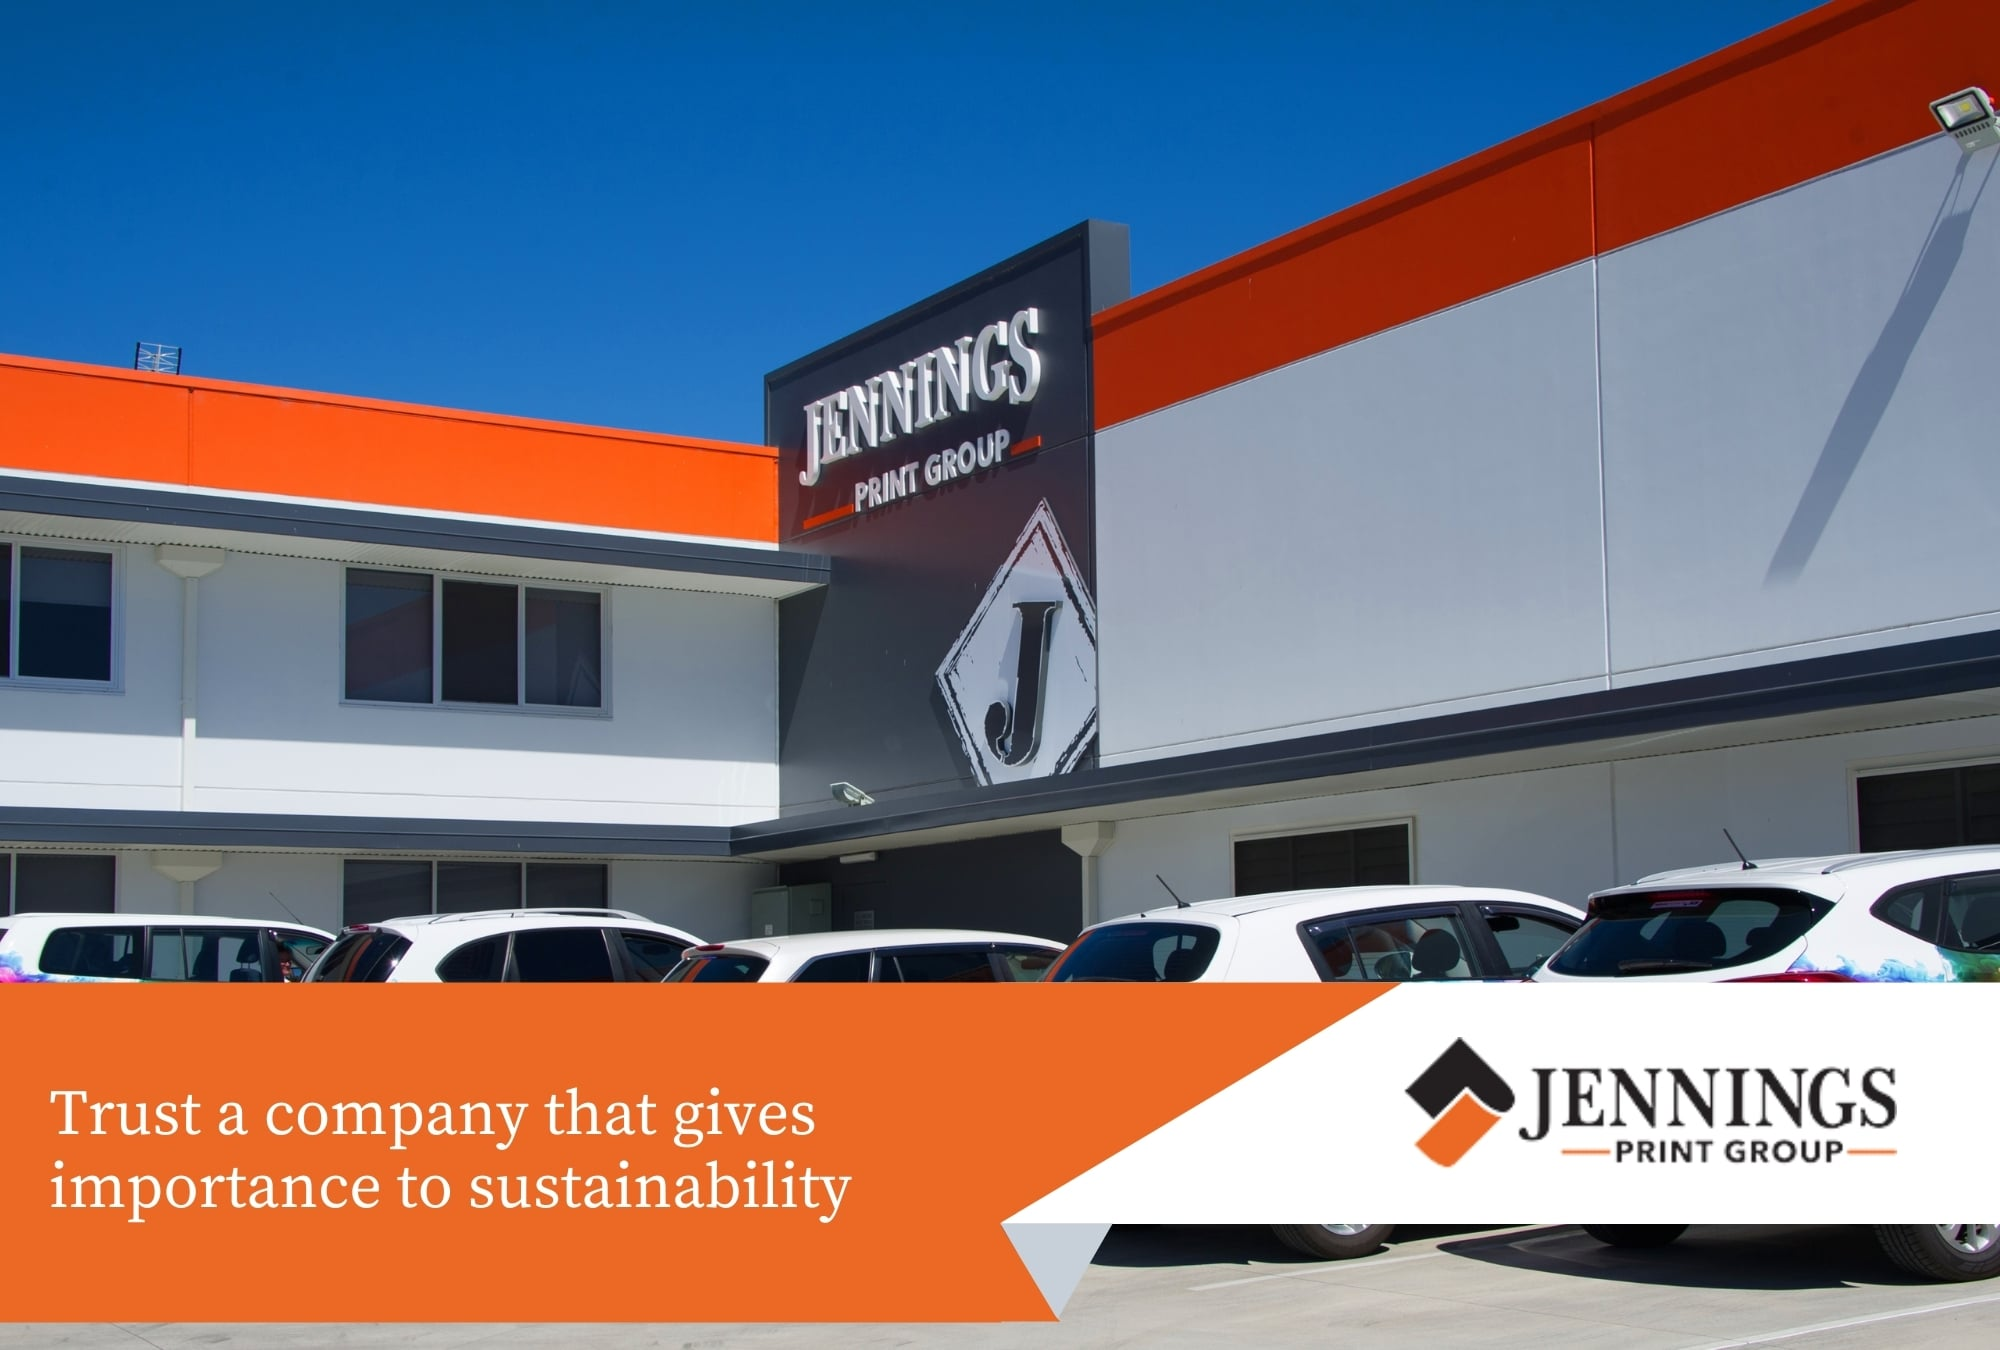 Trust a company that gives importance to sustainability